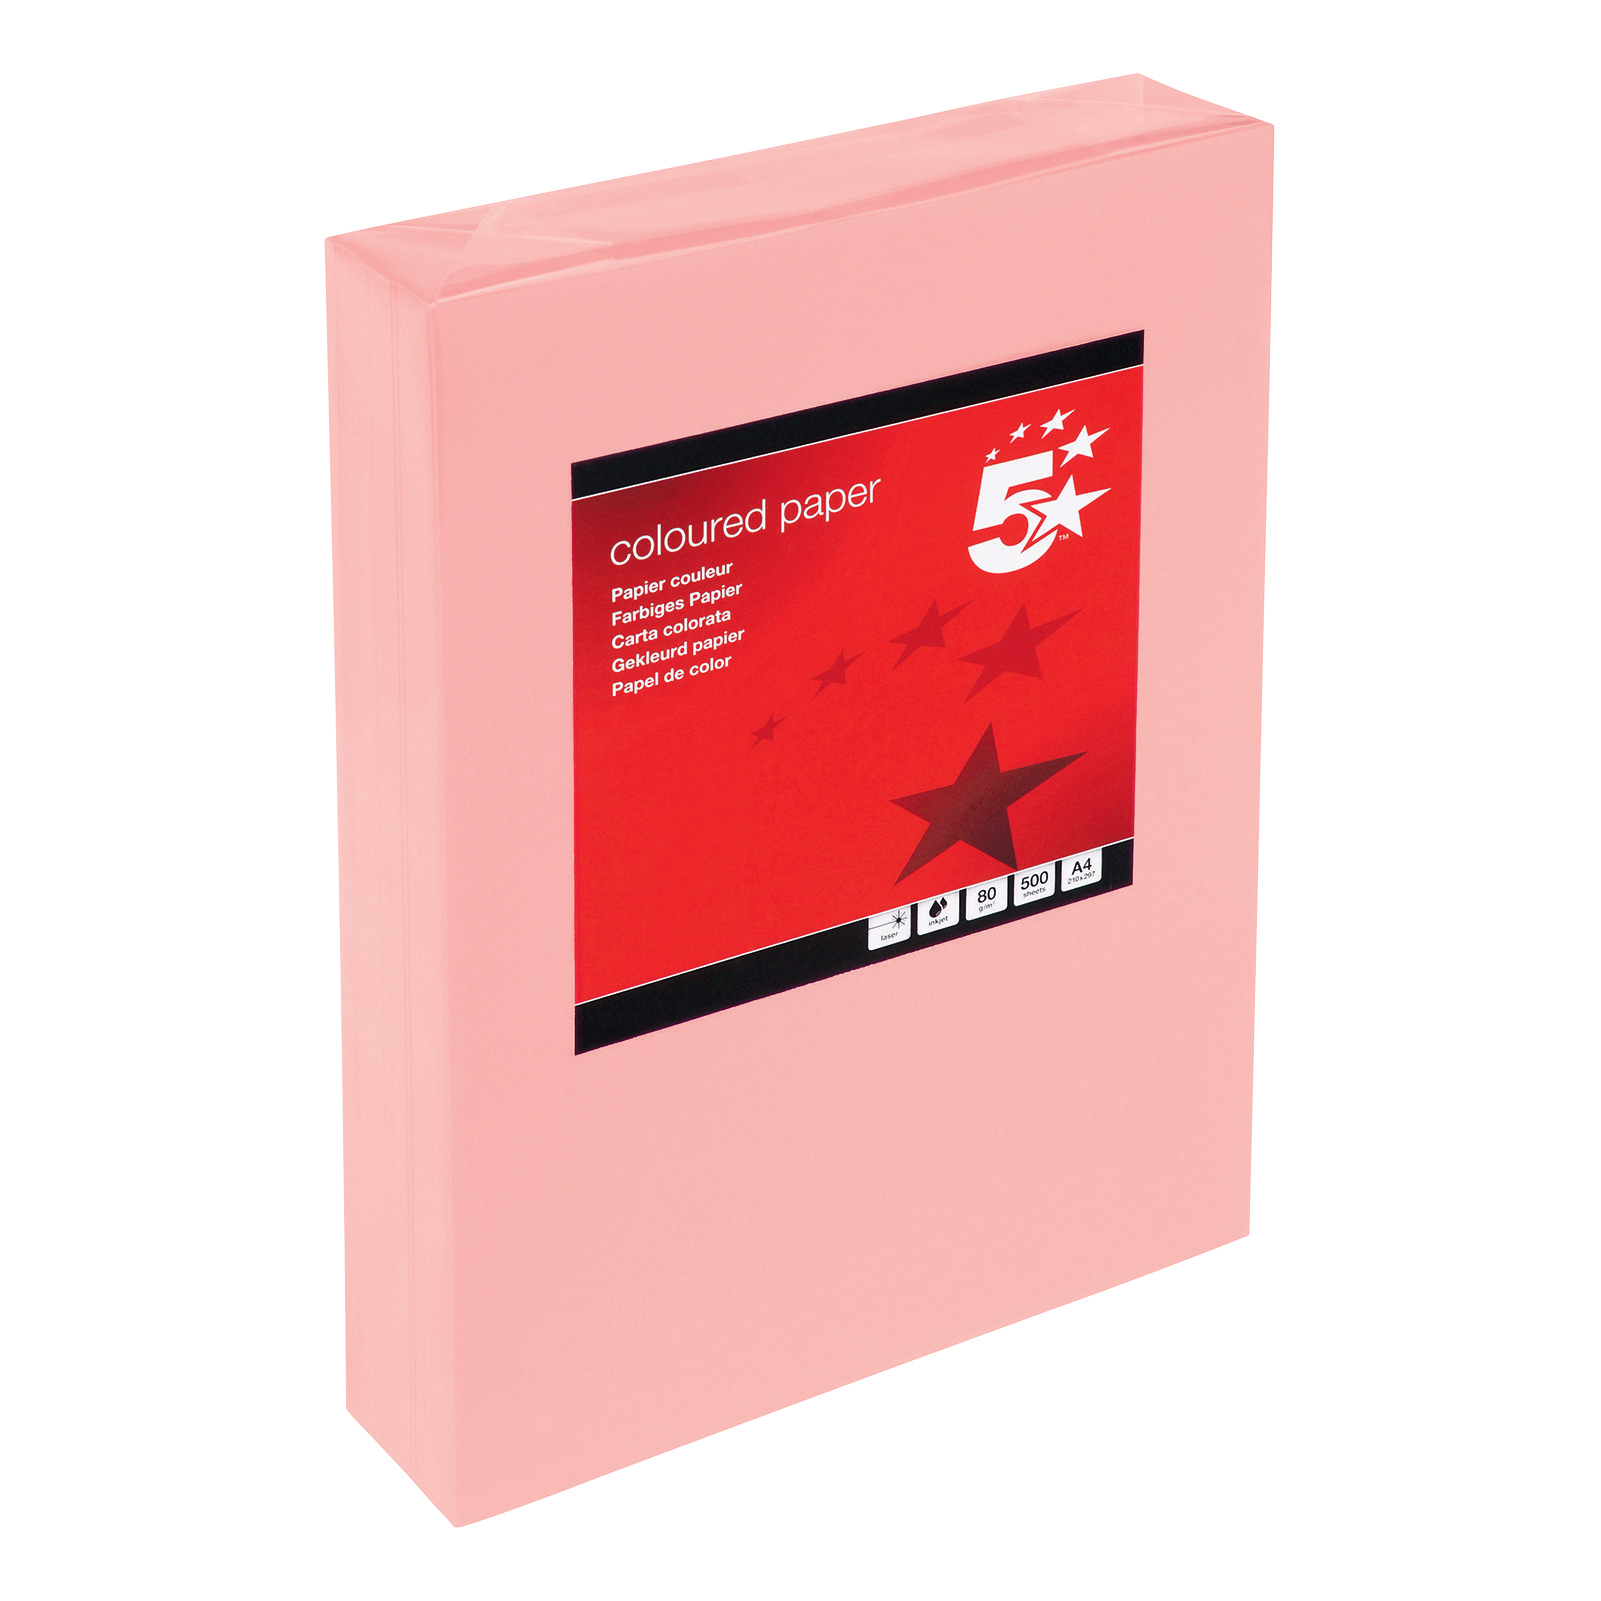 A4 5 Star Office Coloured Copier Paper Multifunctional Ream-Wrapped 80gsm A4 Medium Salmon 500 Sheets